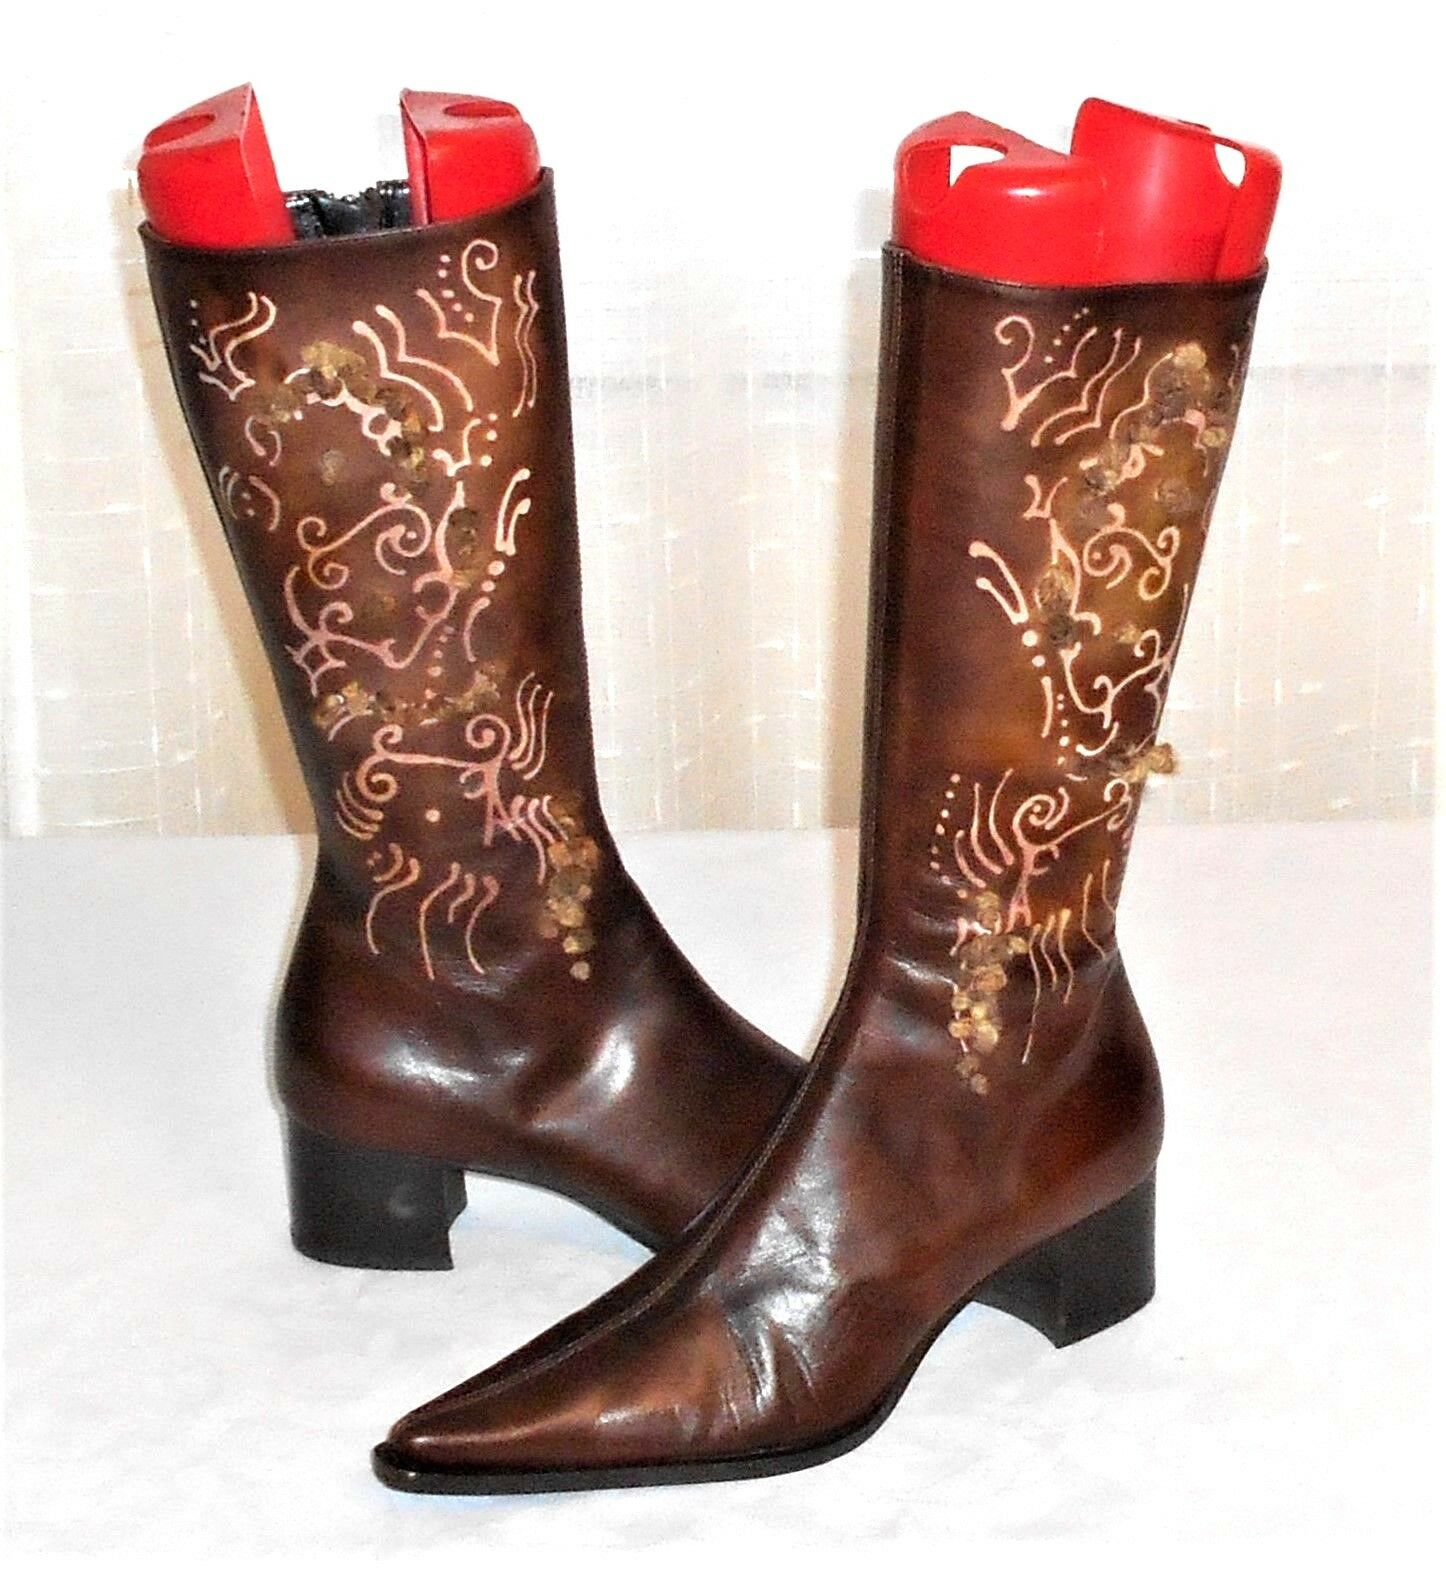 Caiman Brand Brown Leather Point Toe Zip Fashion Boot Made in Italy Euro 36.5